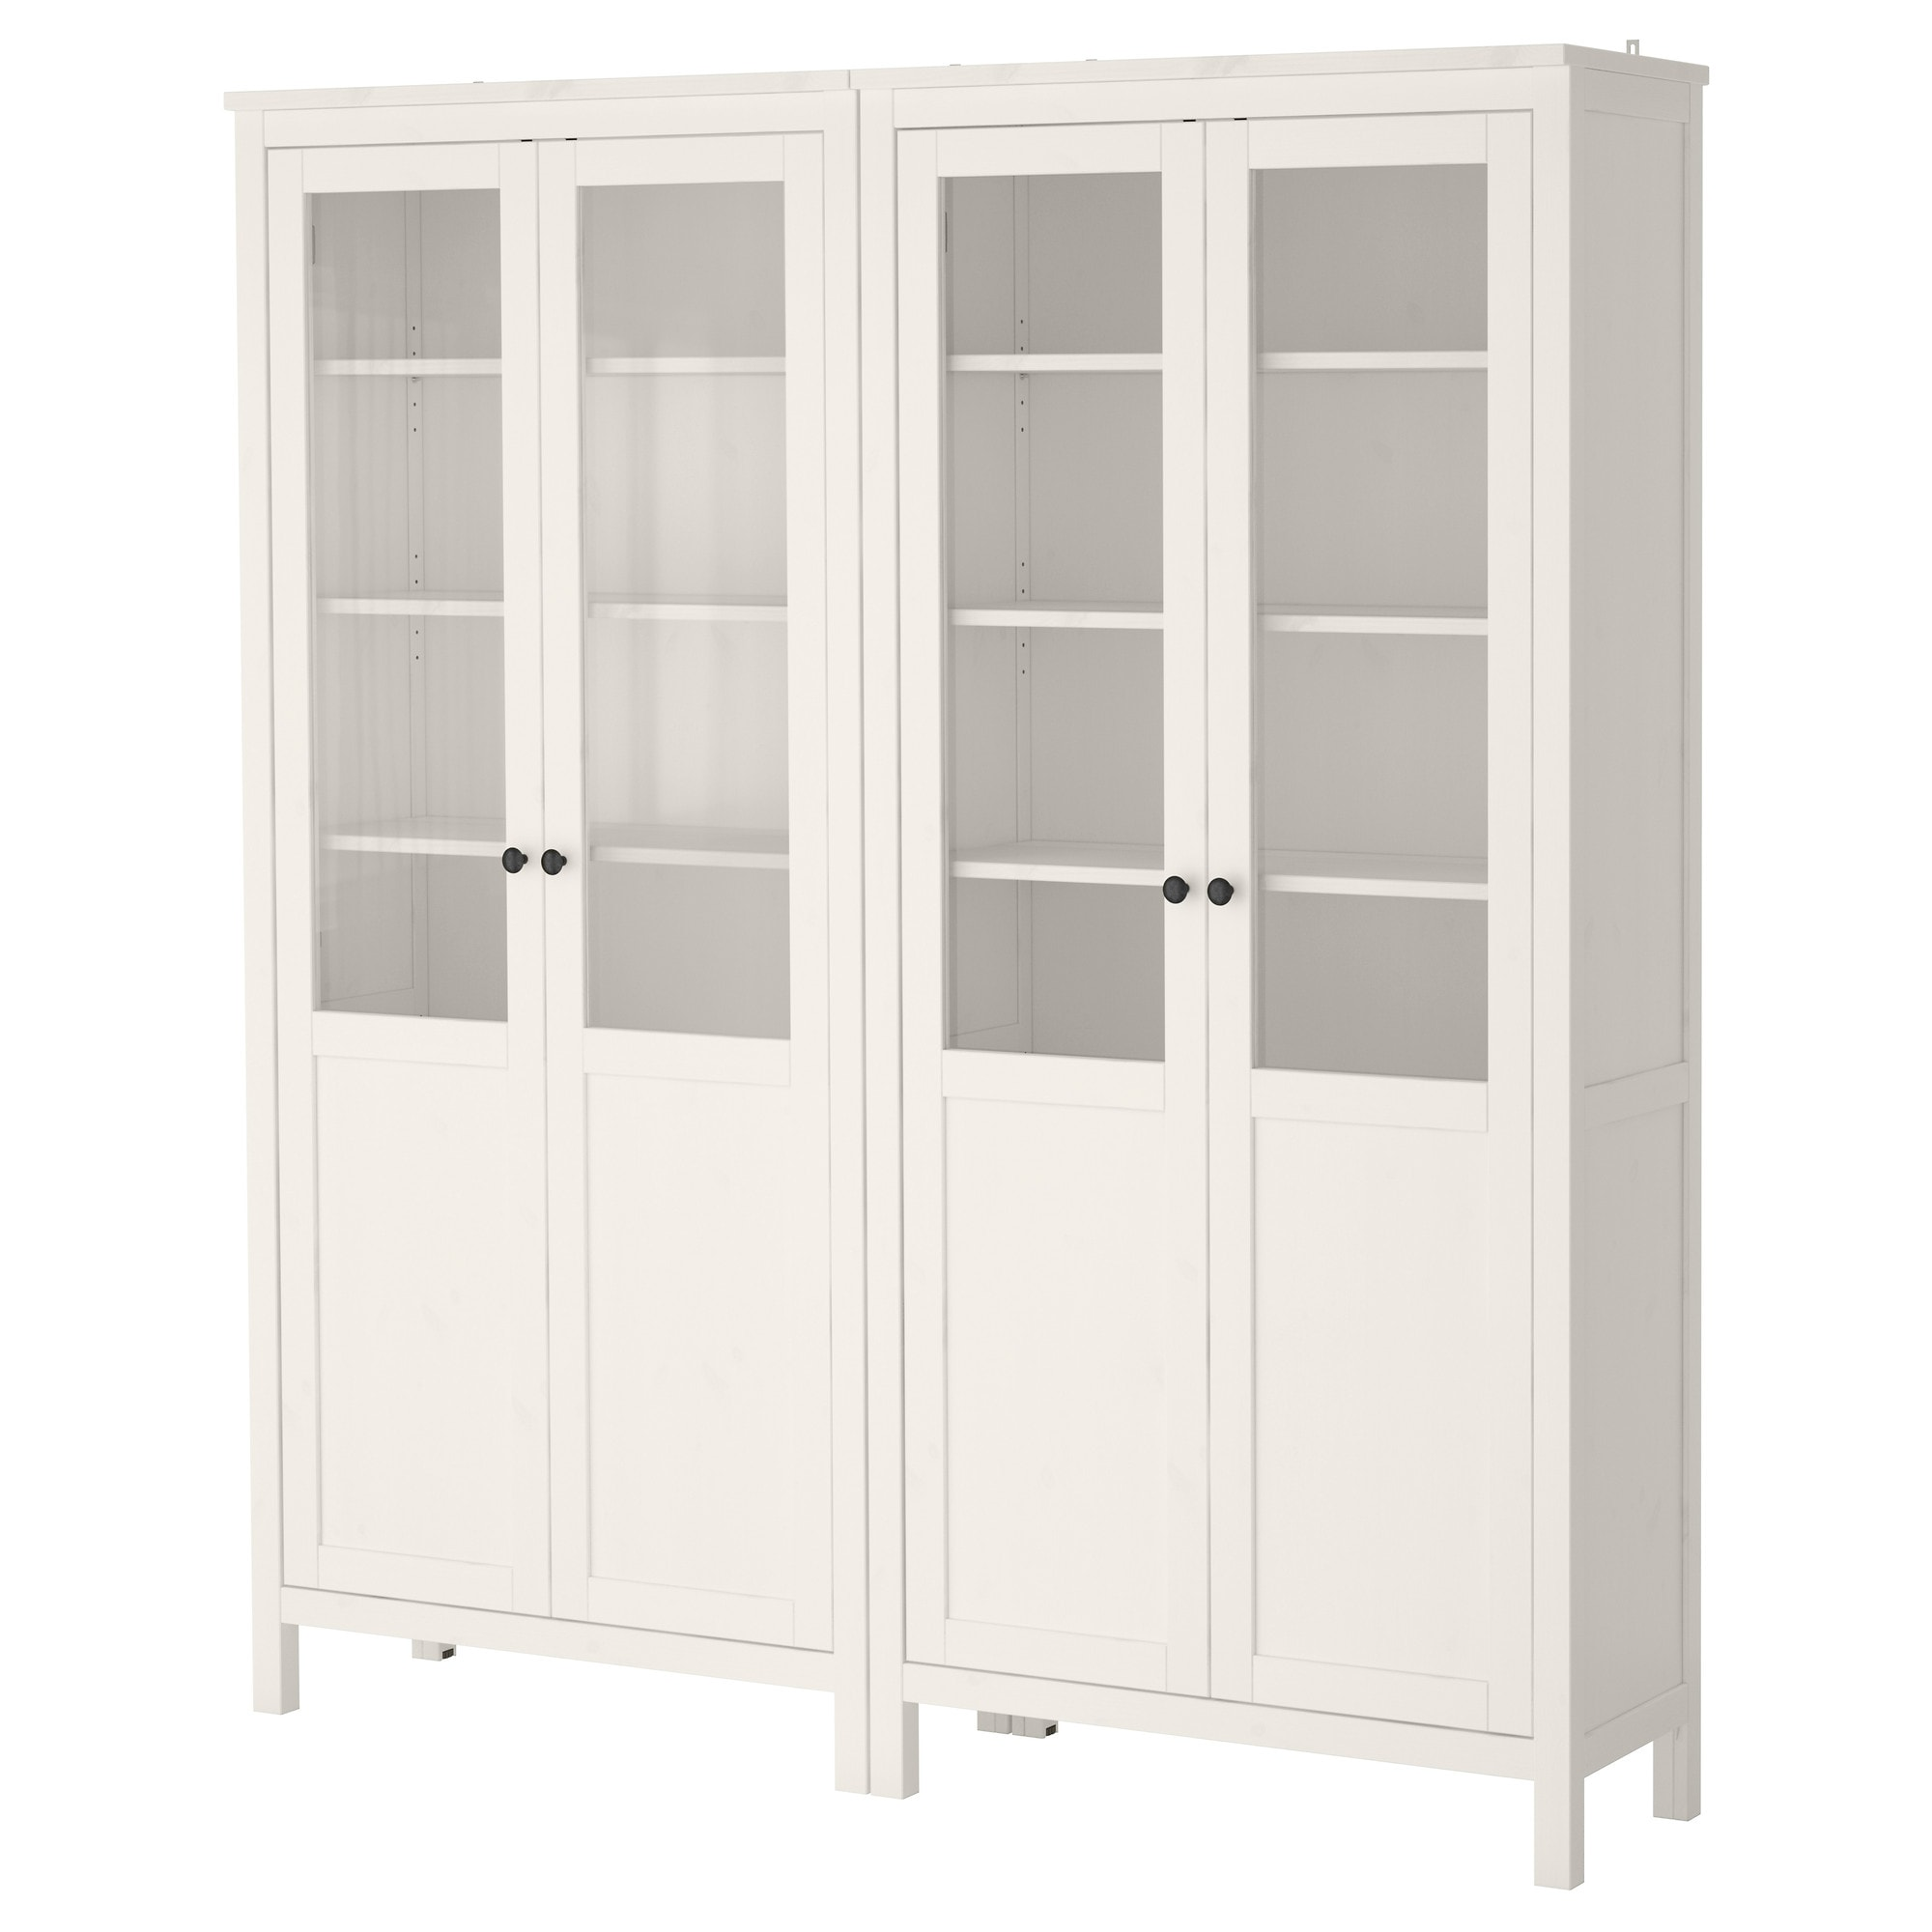 white glass furniture. hemnes storage combination wglass doors white stain width 70 78 glass furniture